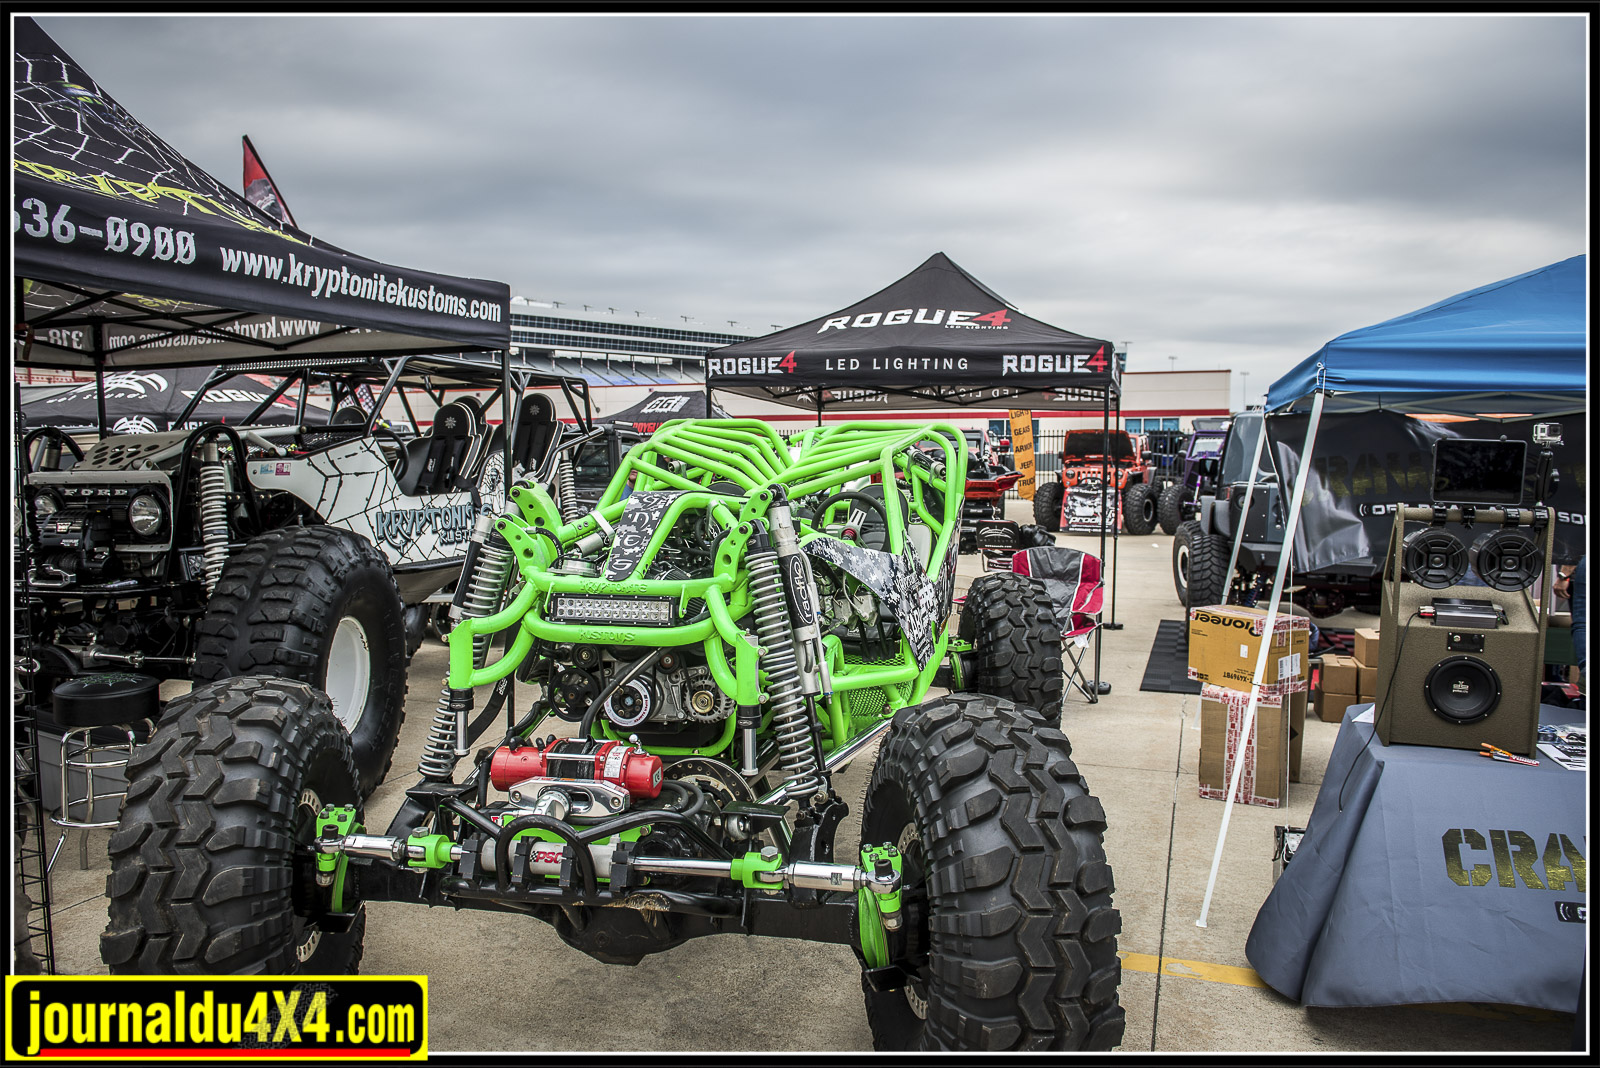 unlimited-off-road-expo-2017-7638.jpg